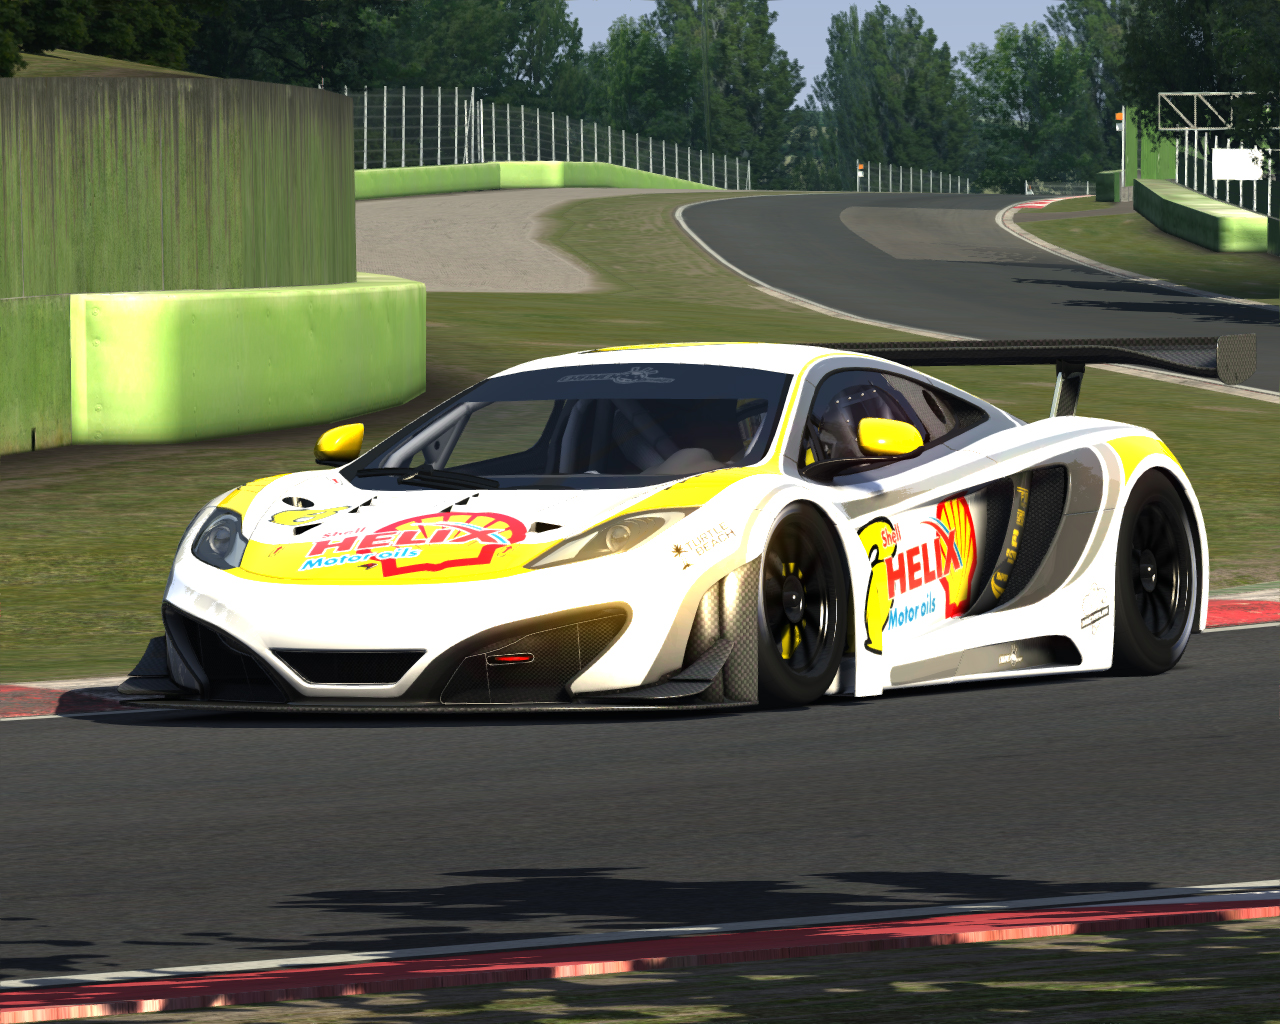 Screenshot_mclaren_mp412c_gt3_imola_5-7-2014-10-35-22.jpg